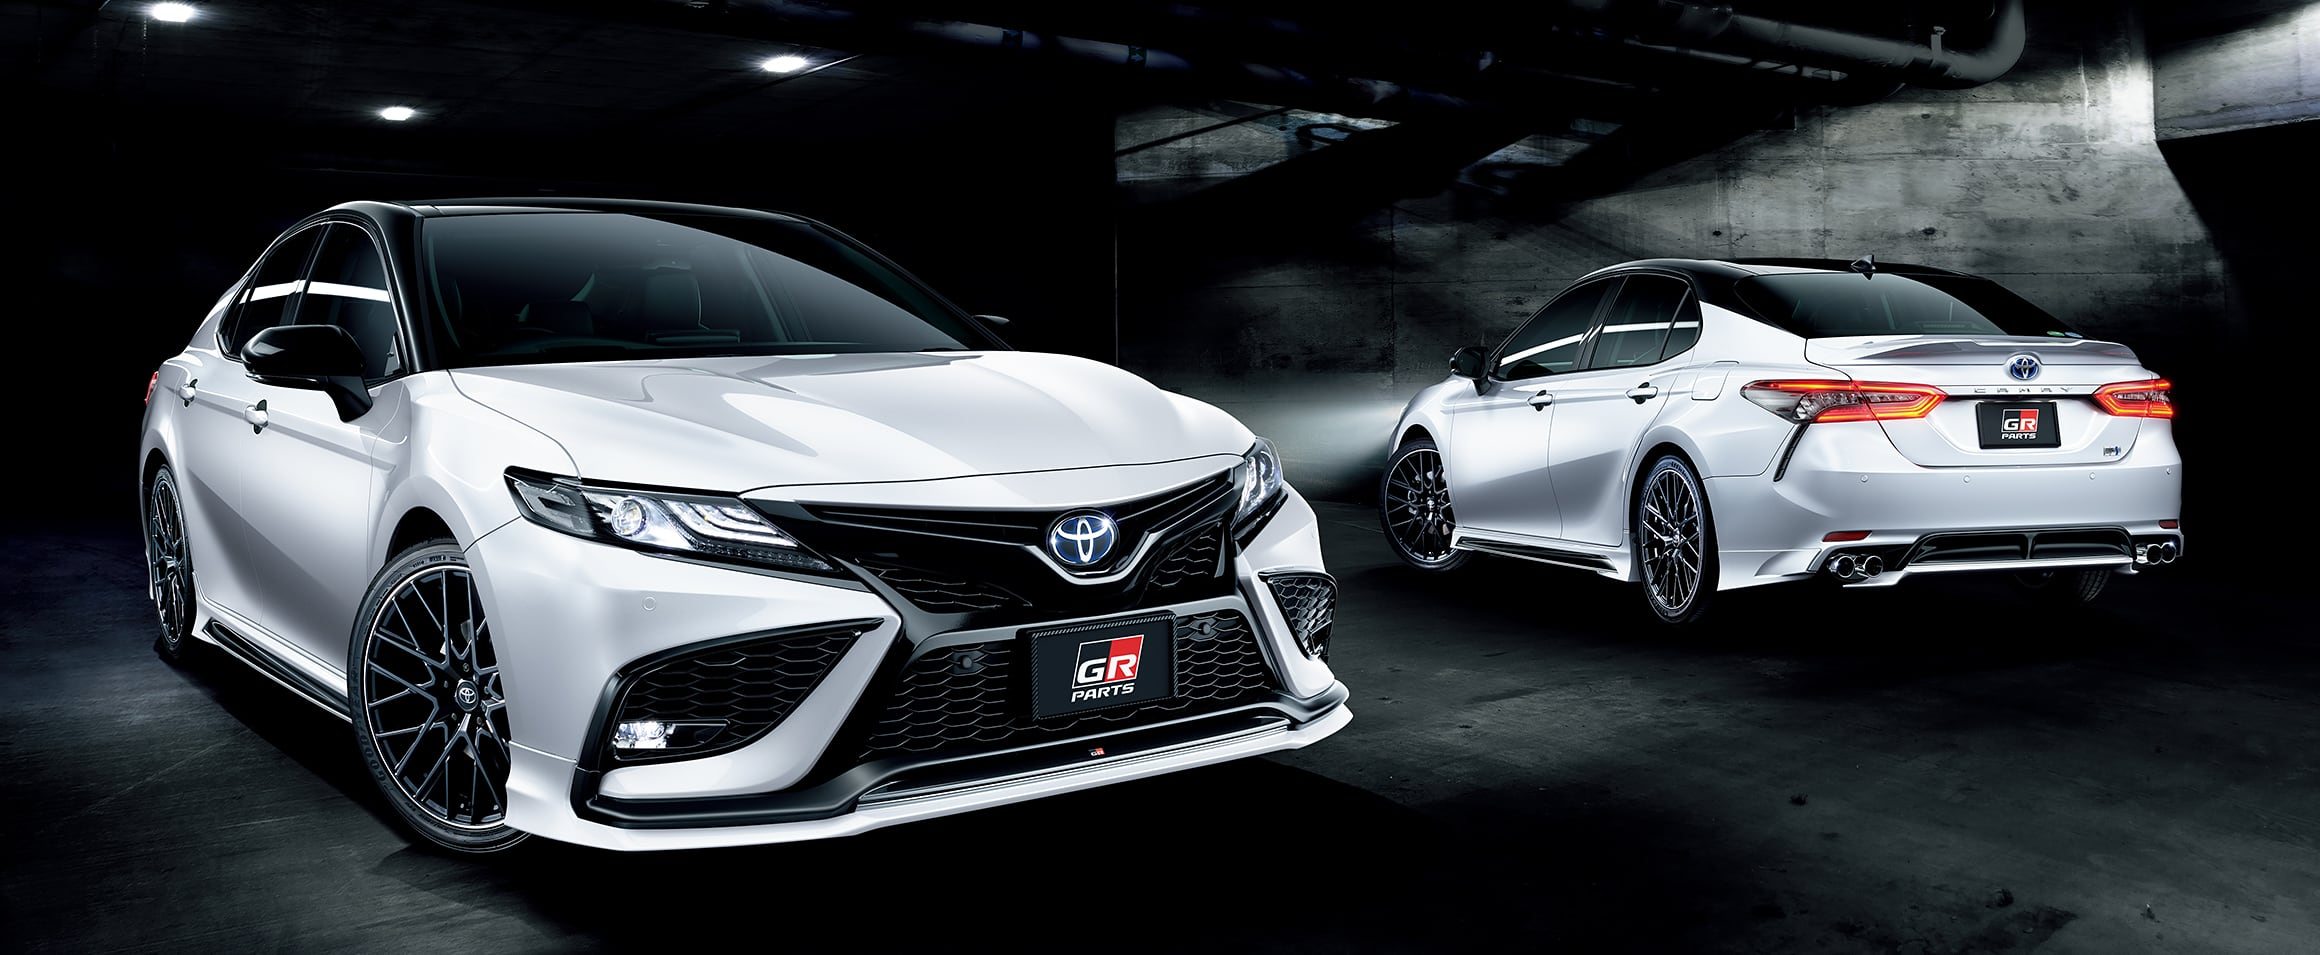 TRD GR PARTS Sensual Sport Style 7# カムリ 2021.2〜